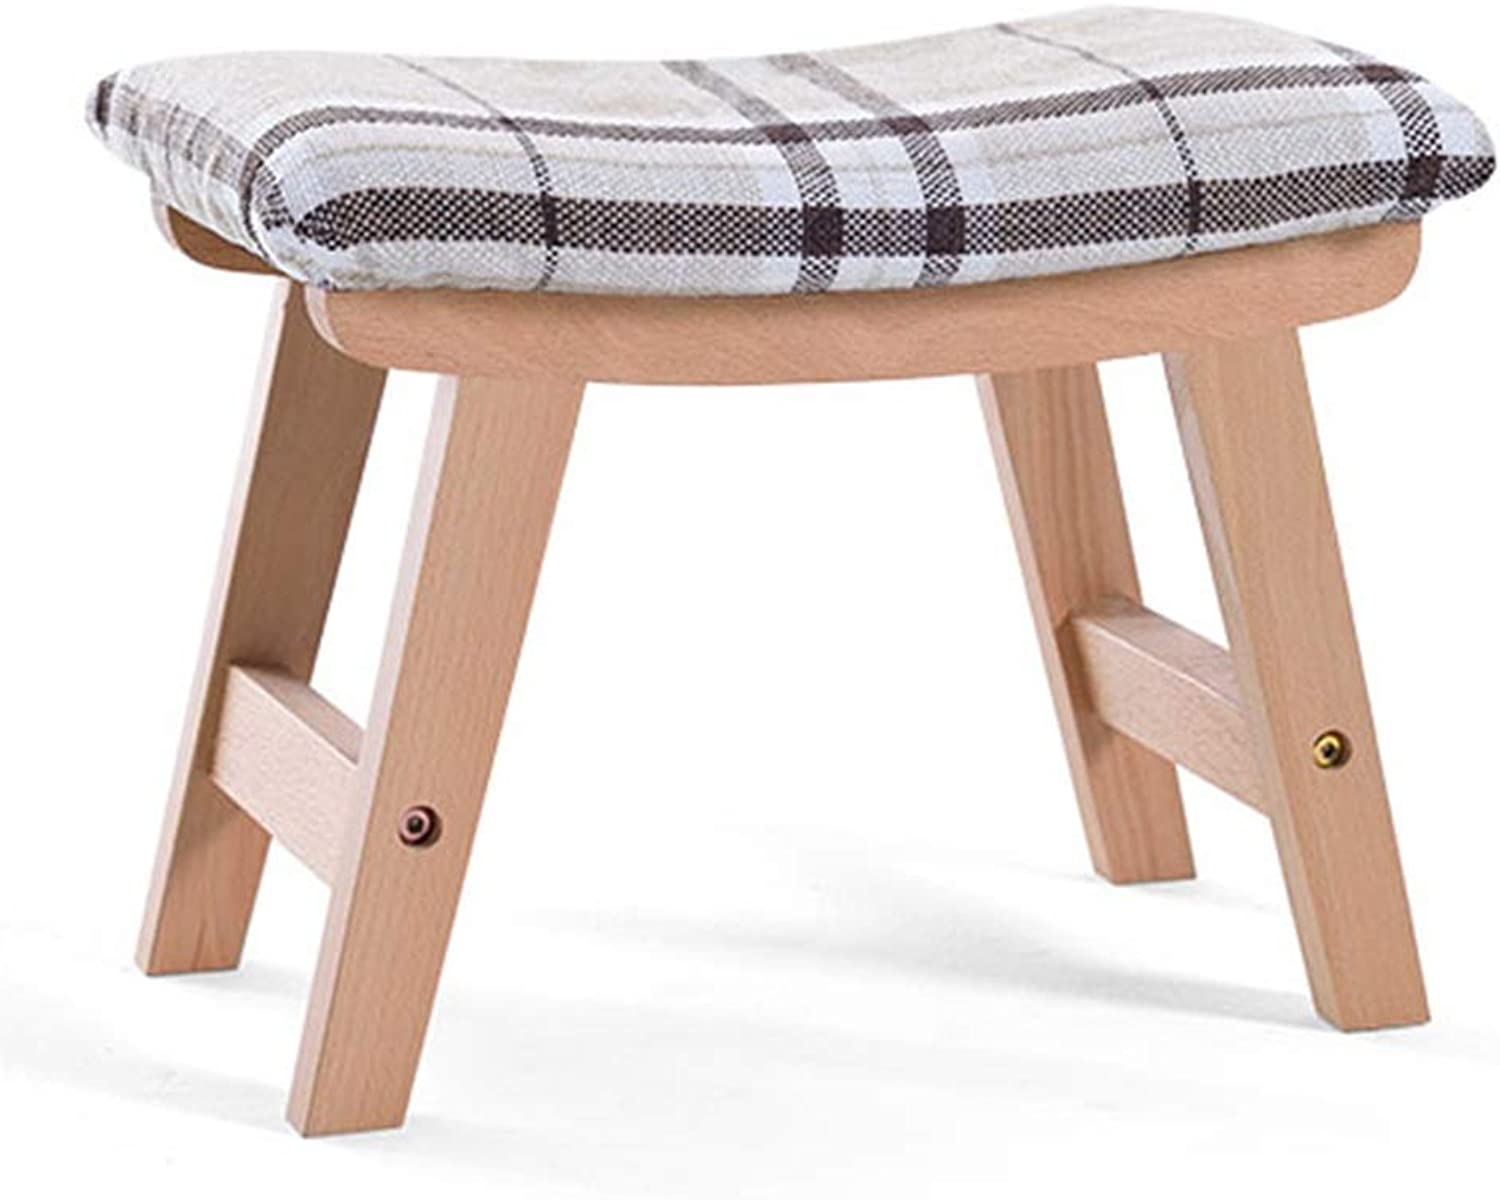 Stool Footstool Solid Wood Sofa Stool Living Room Coffee Table Stool Small Bench Change shoes Bench Chair Low Stool GAOFENG (color   Striped+Natural Wood, Size   38  26  29cm)